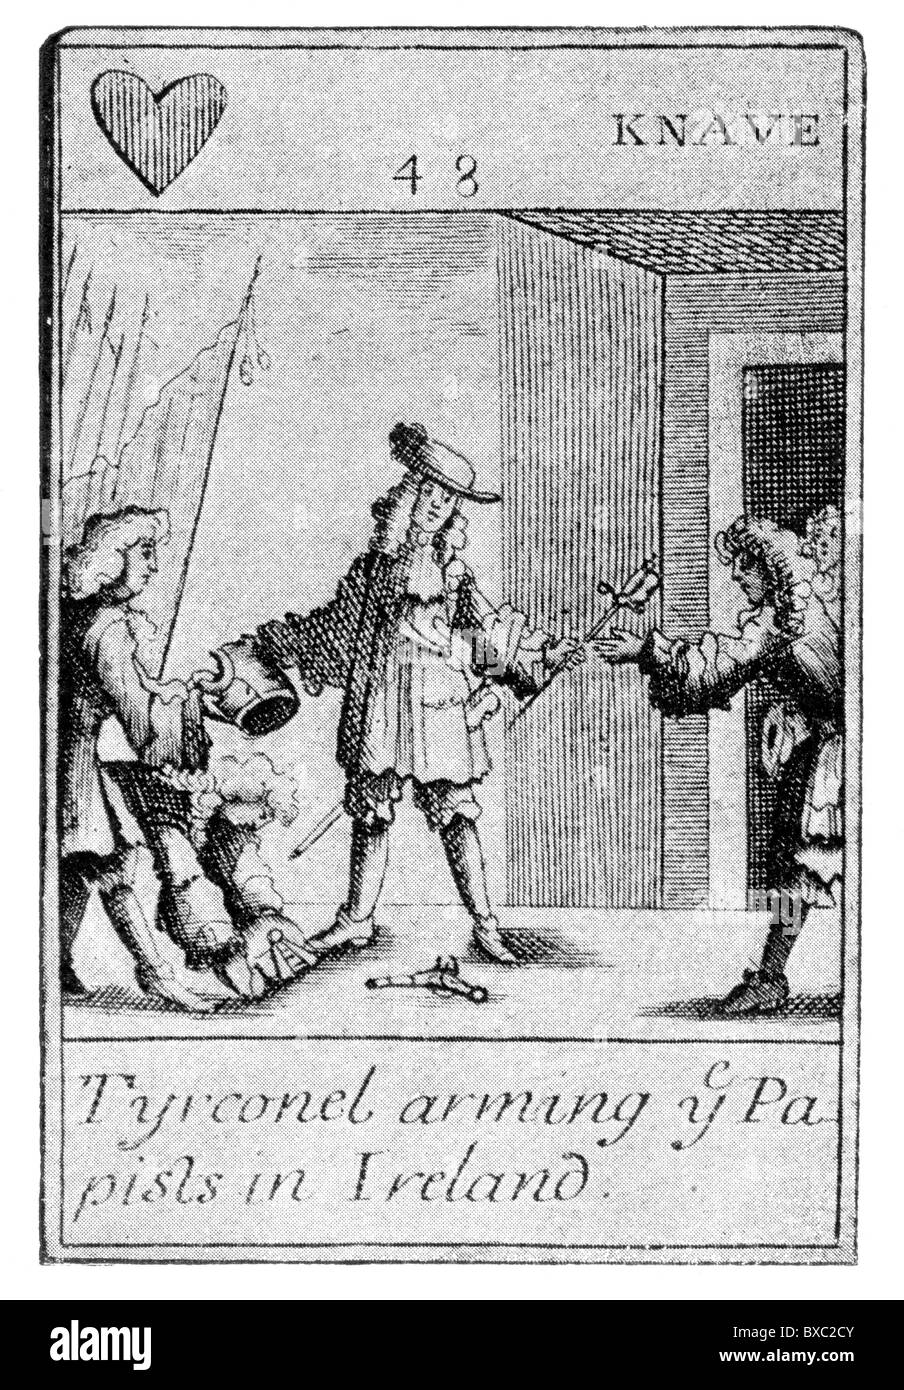 17th century satirical playing card;  Richard Talbot, 1st Earl of Tyrconnell arming the Papists; Black and White - Stock Image